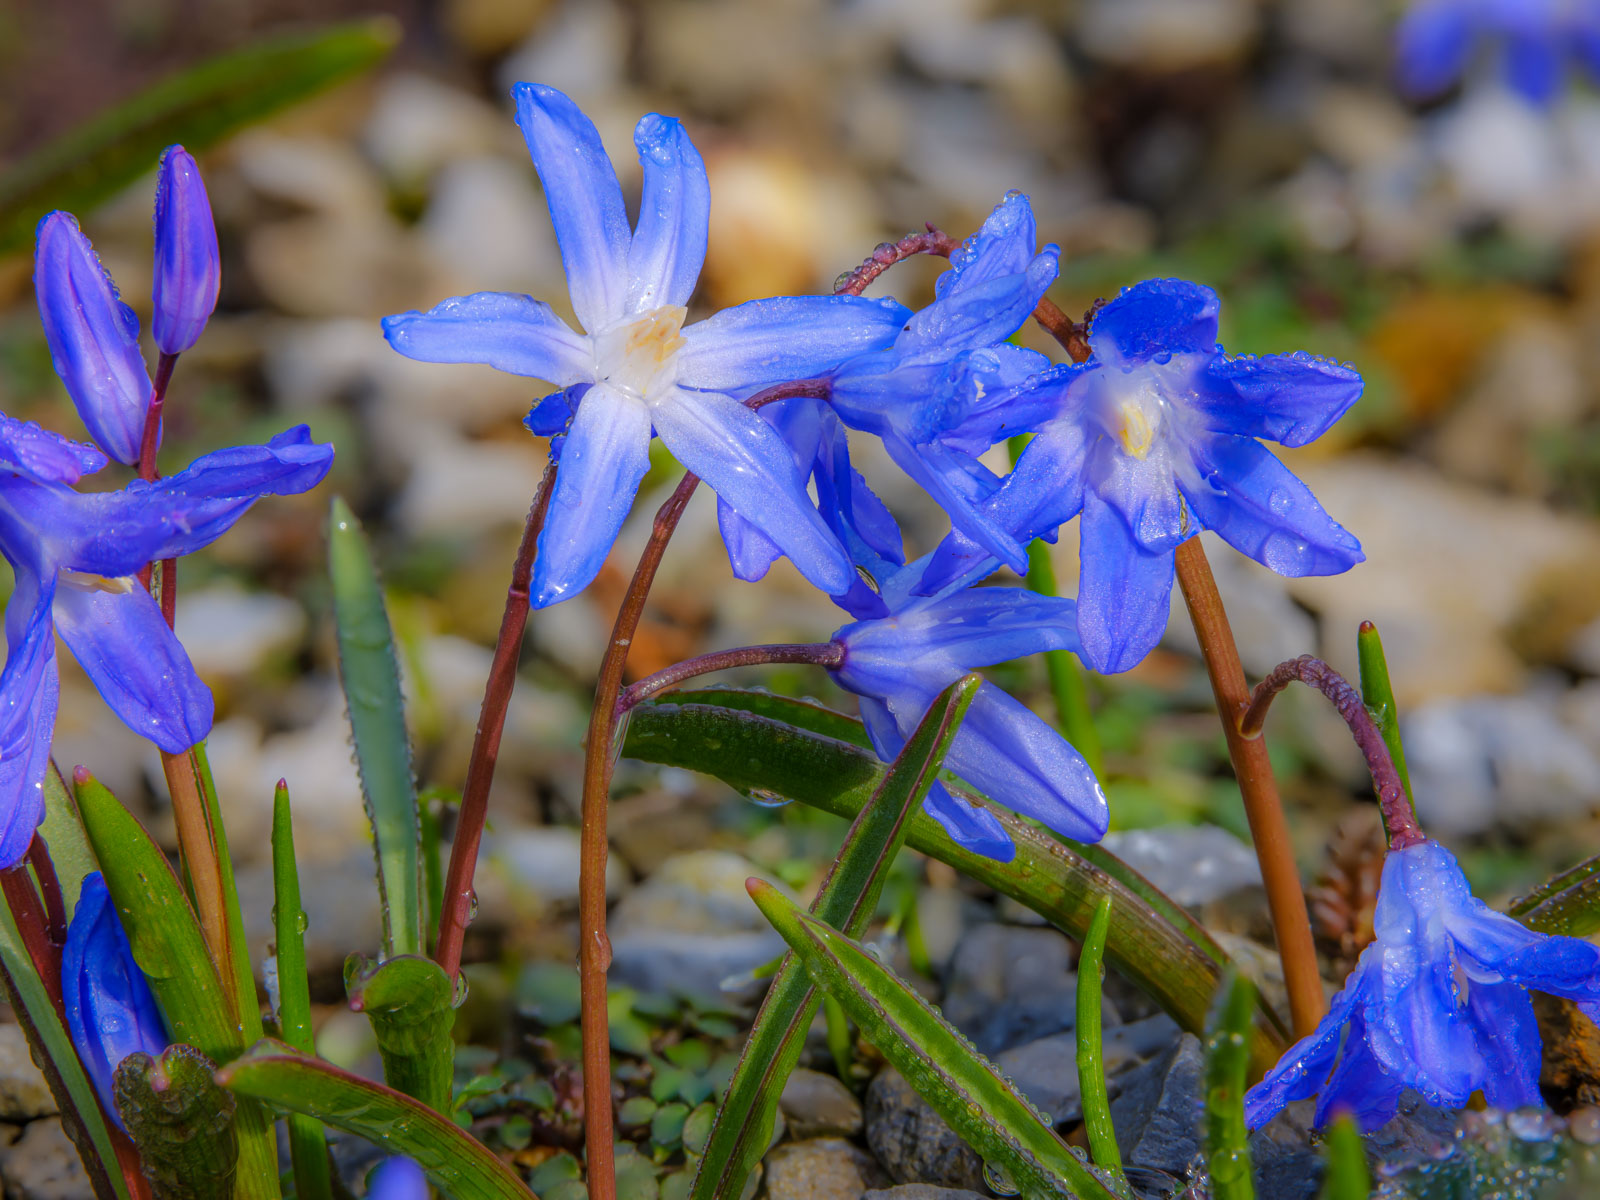 Little blue star known as Glory-of-the-sun (Chionodoxa).